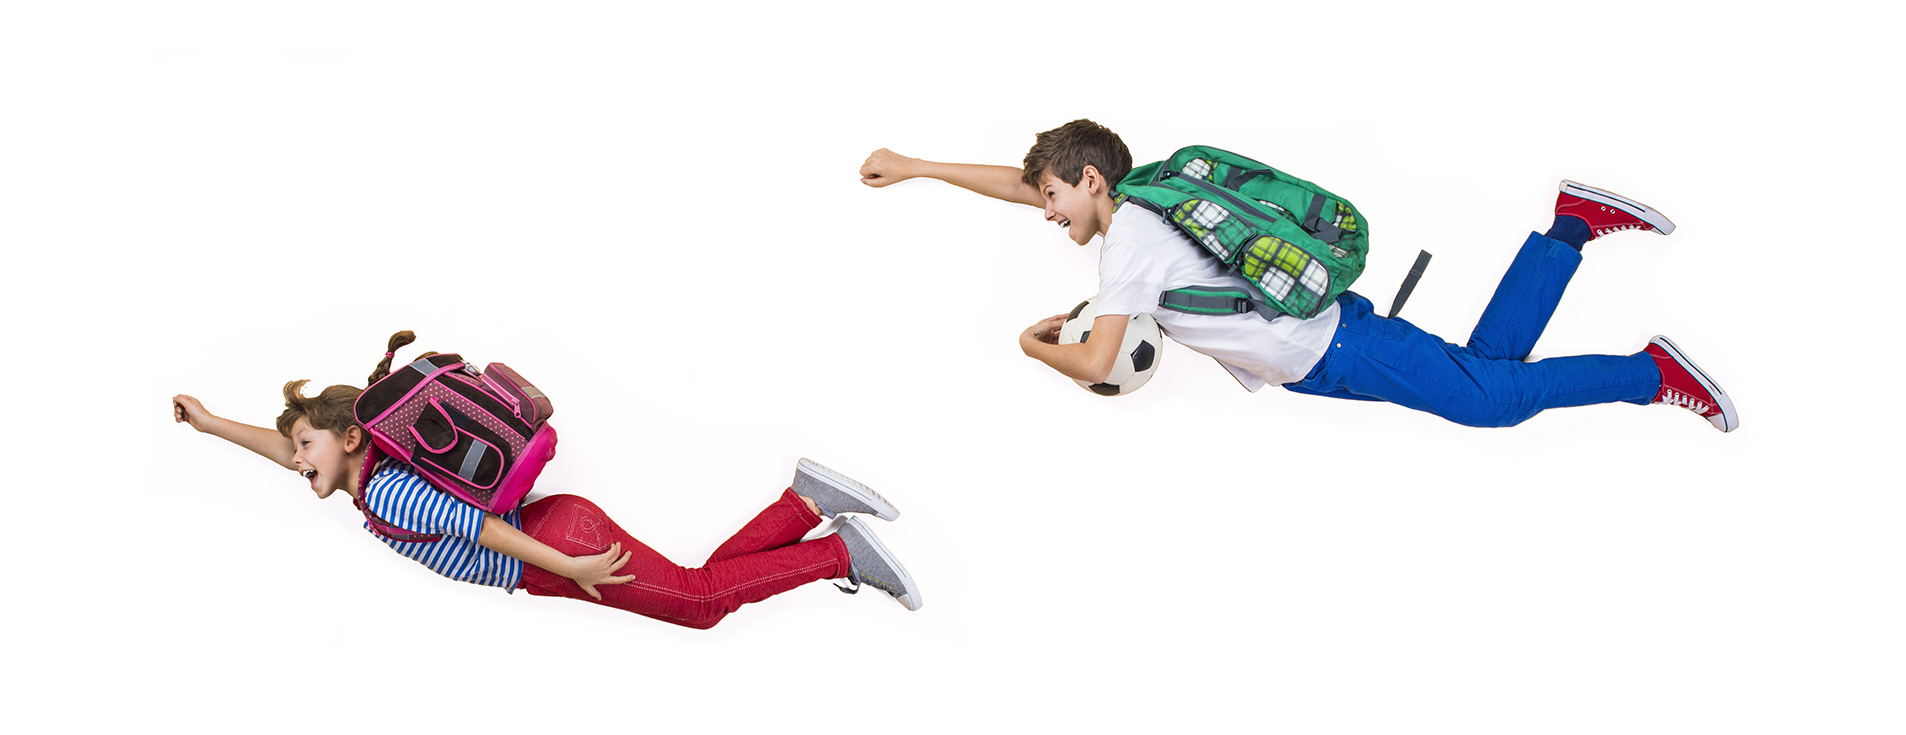 kids flying with backpacks